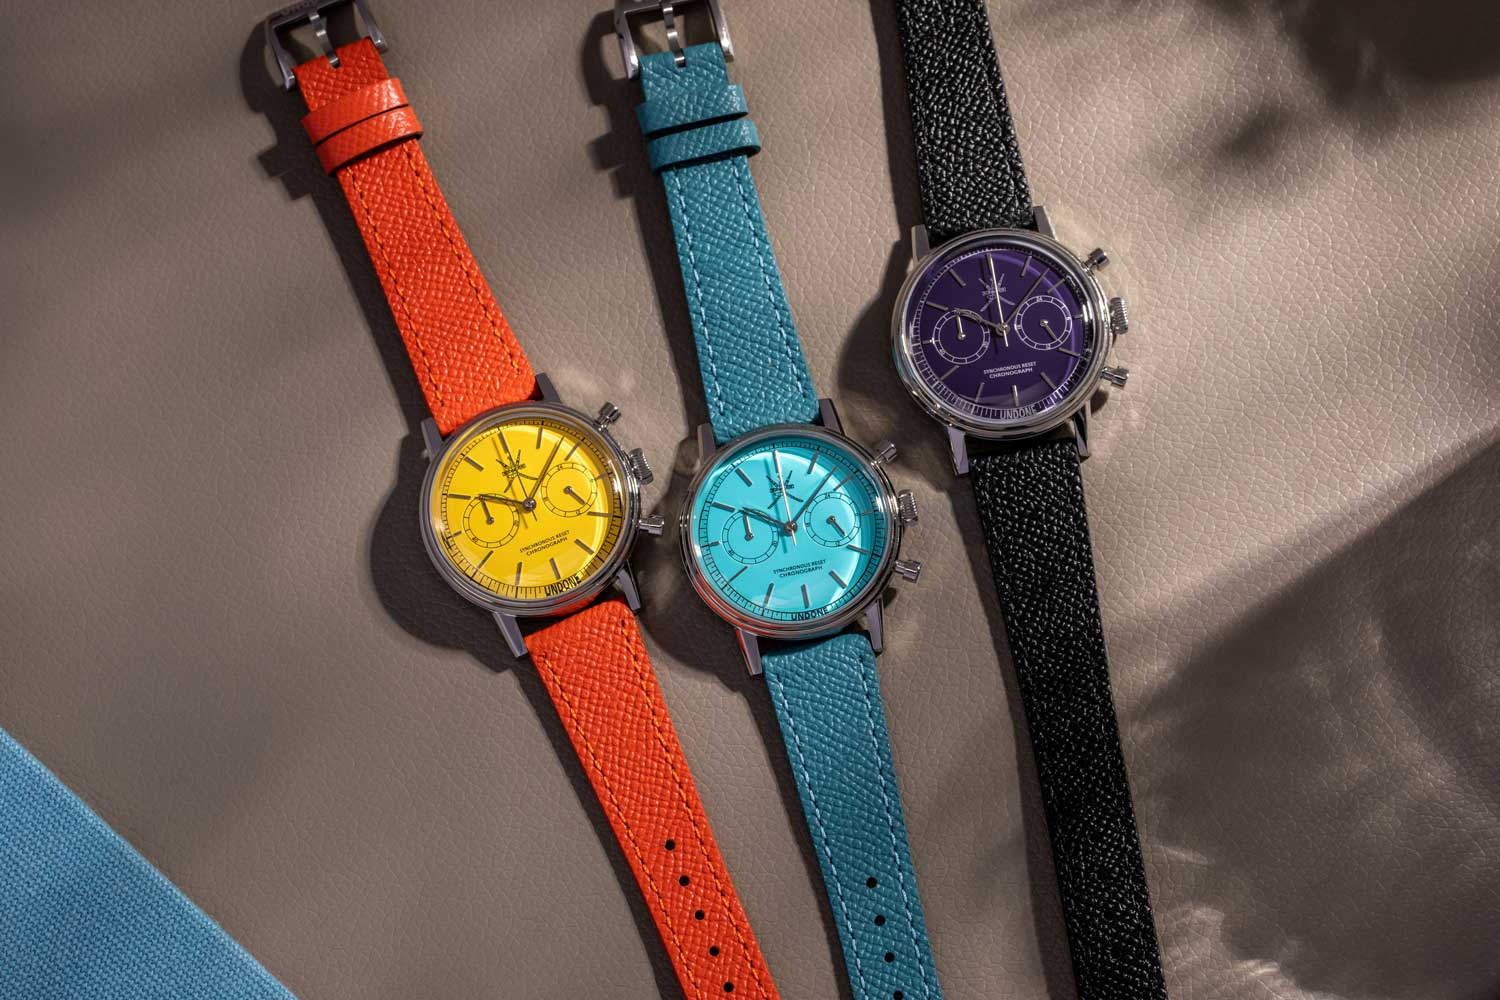 The new UNDONE Stellar is available in Tiff blue, yellow and purple, some of the most sought-after and rare colors in watches